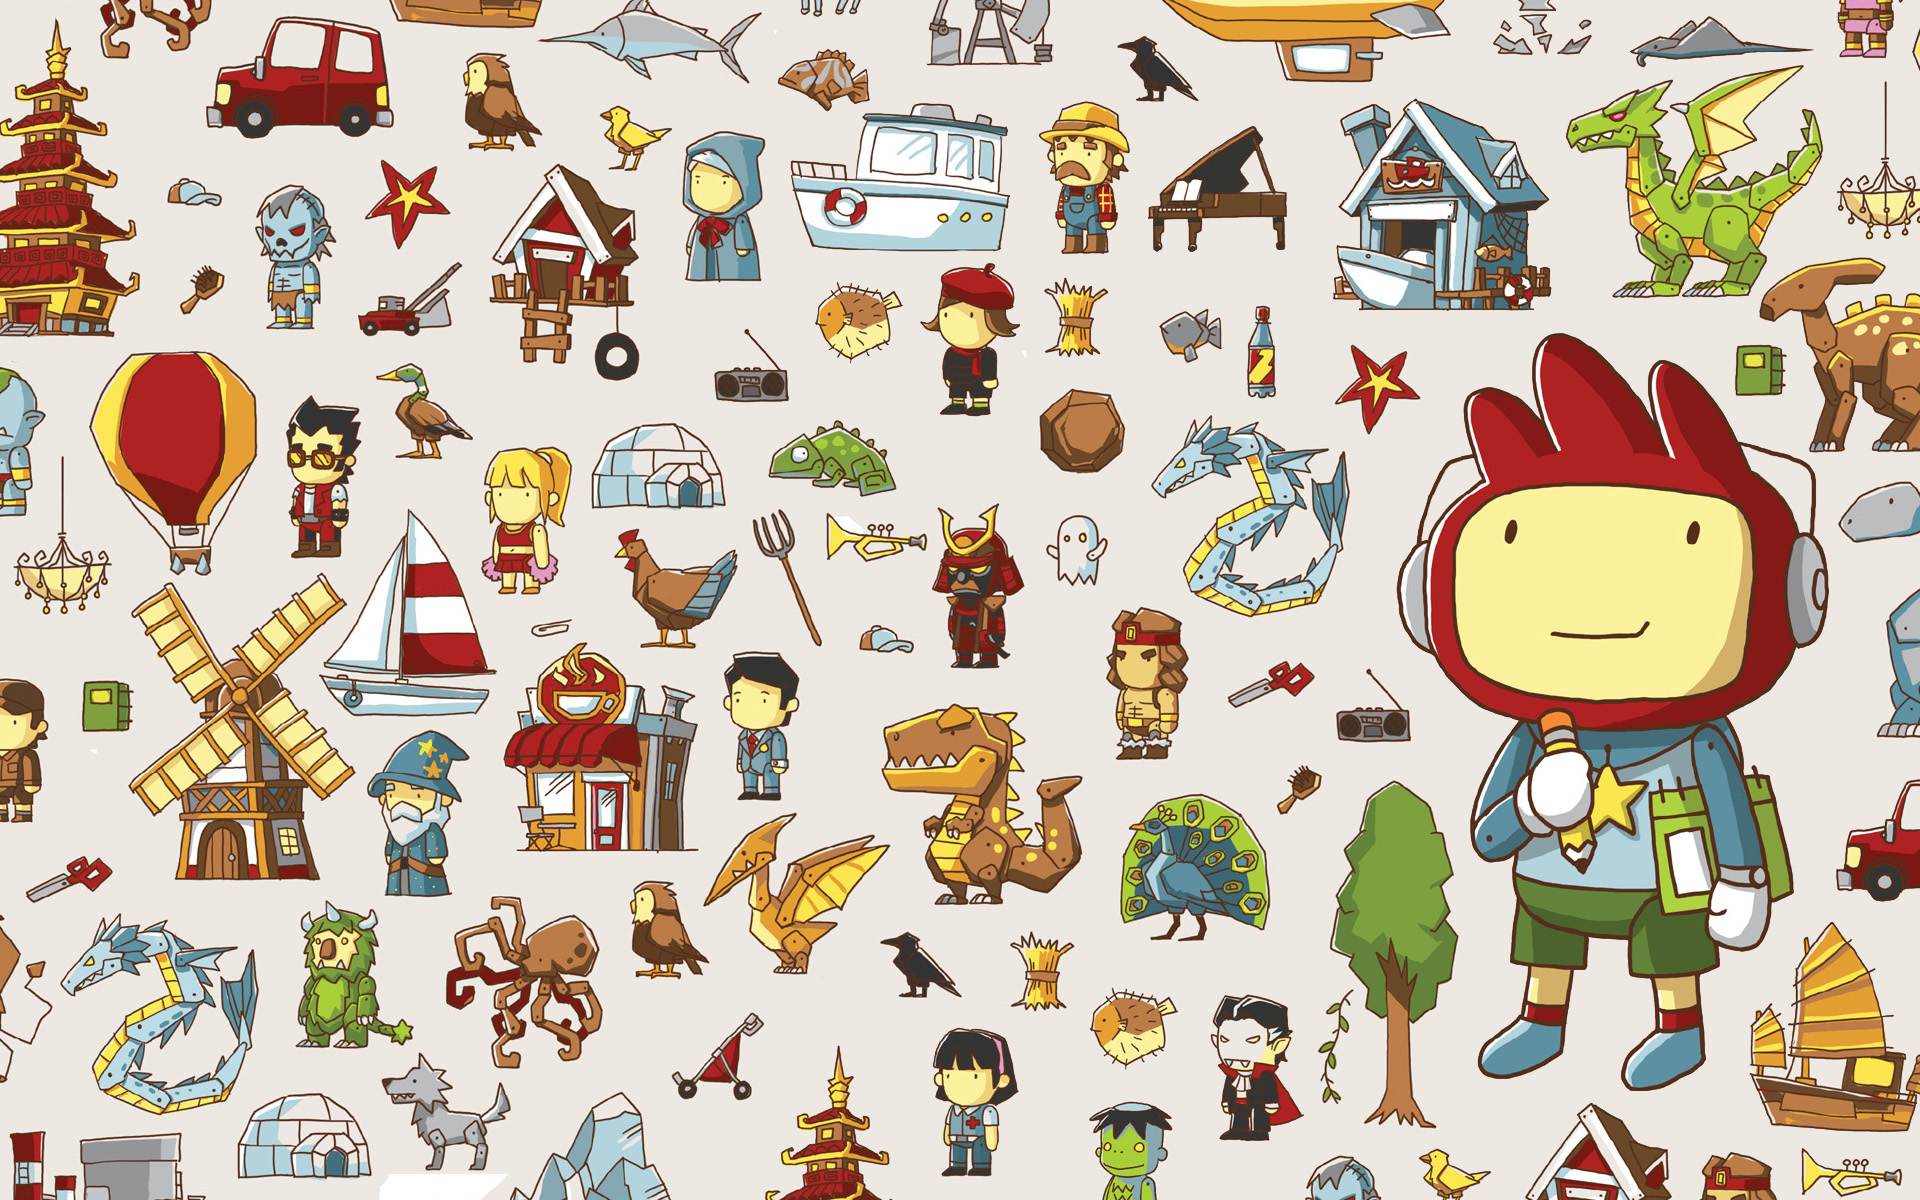 Don't forget to check out our Scribblenauts dictionary list to see all the